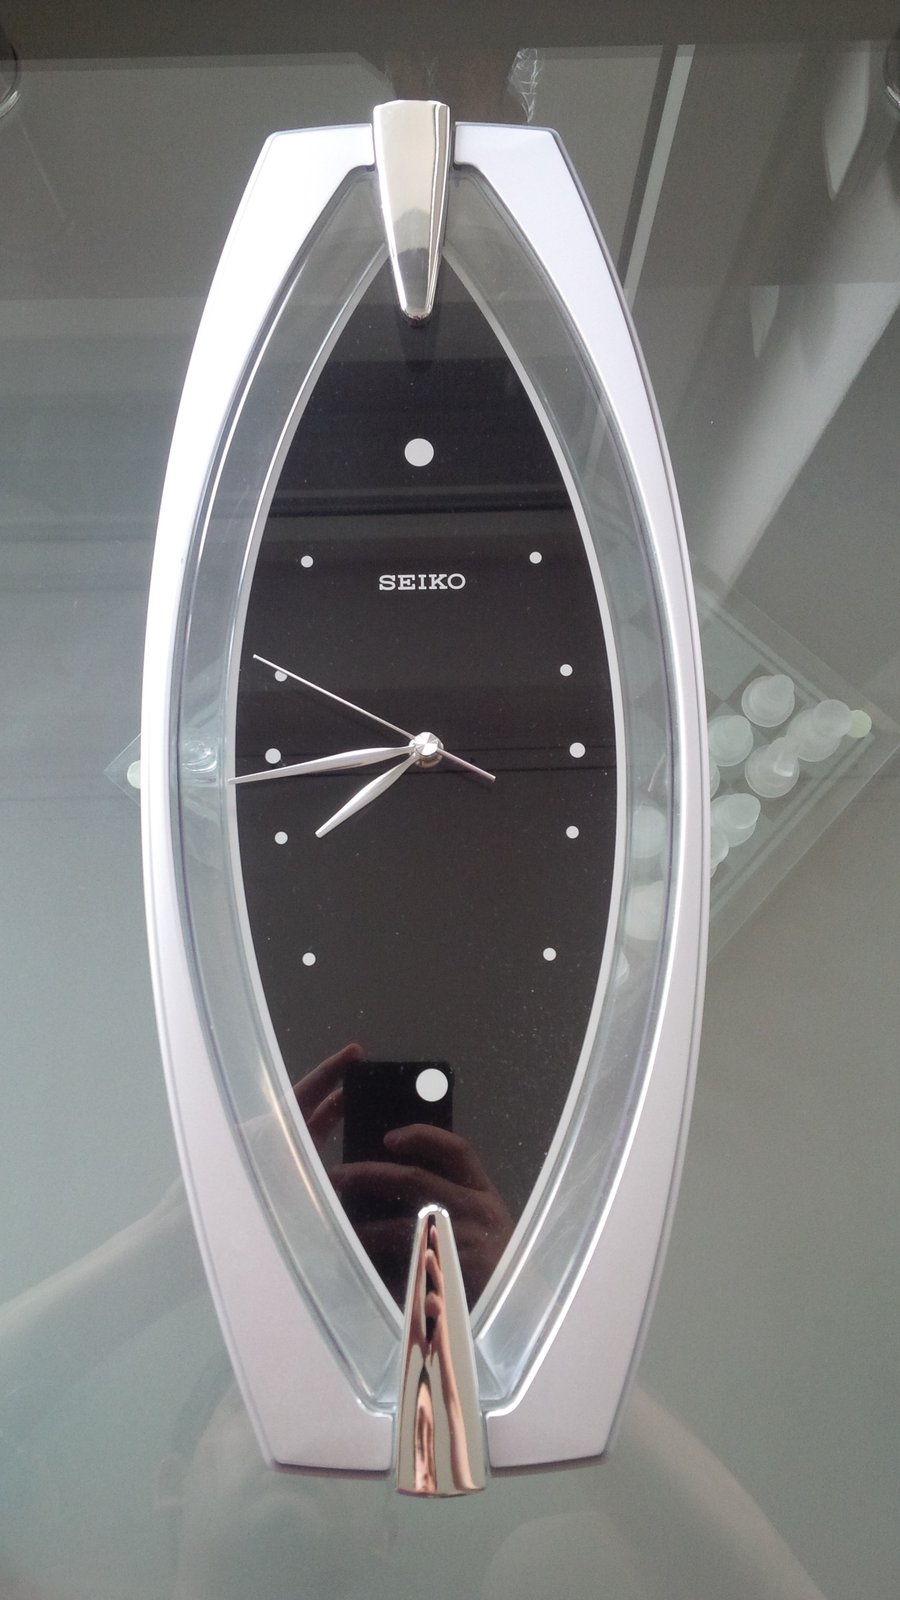 reserviert seiko wanduhr mit schleichender sekunde silber schwarz uhrforum. Black Bedroom Furniture Sets. Home Design Ideas